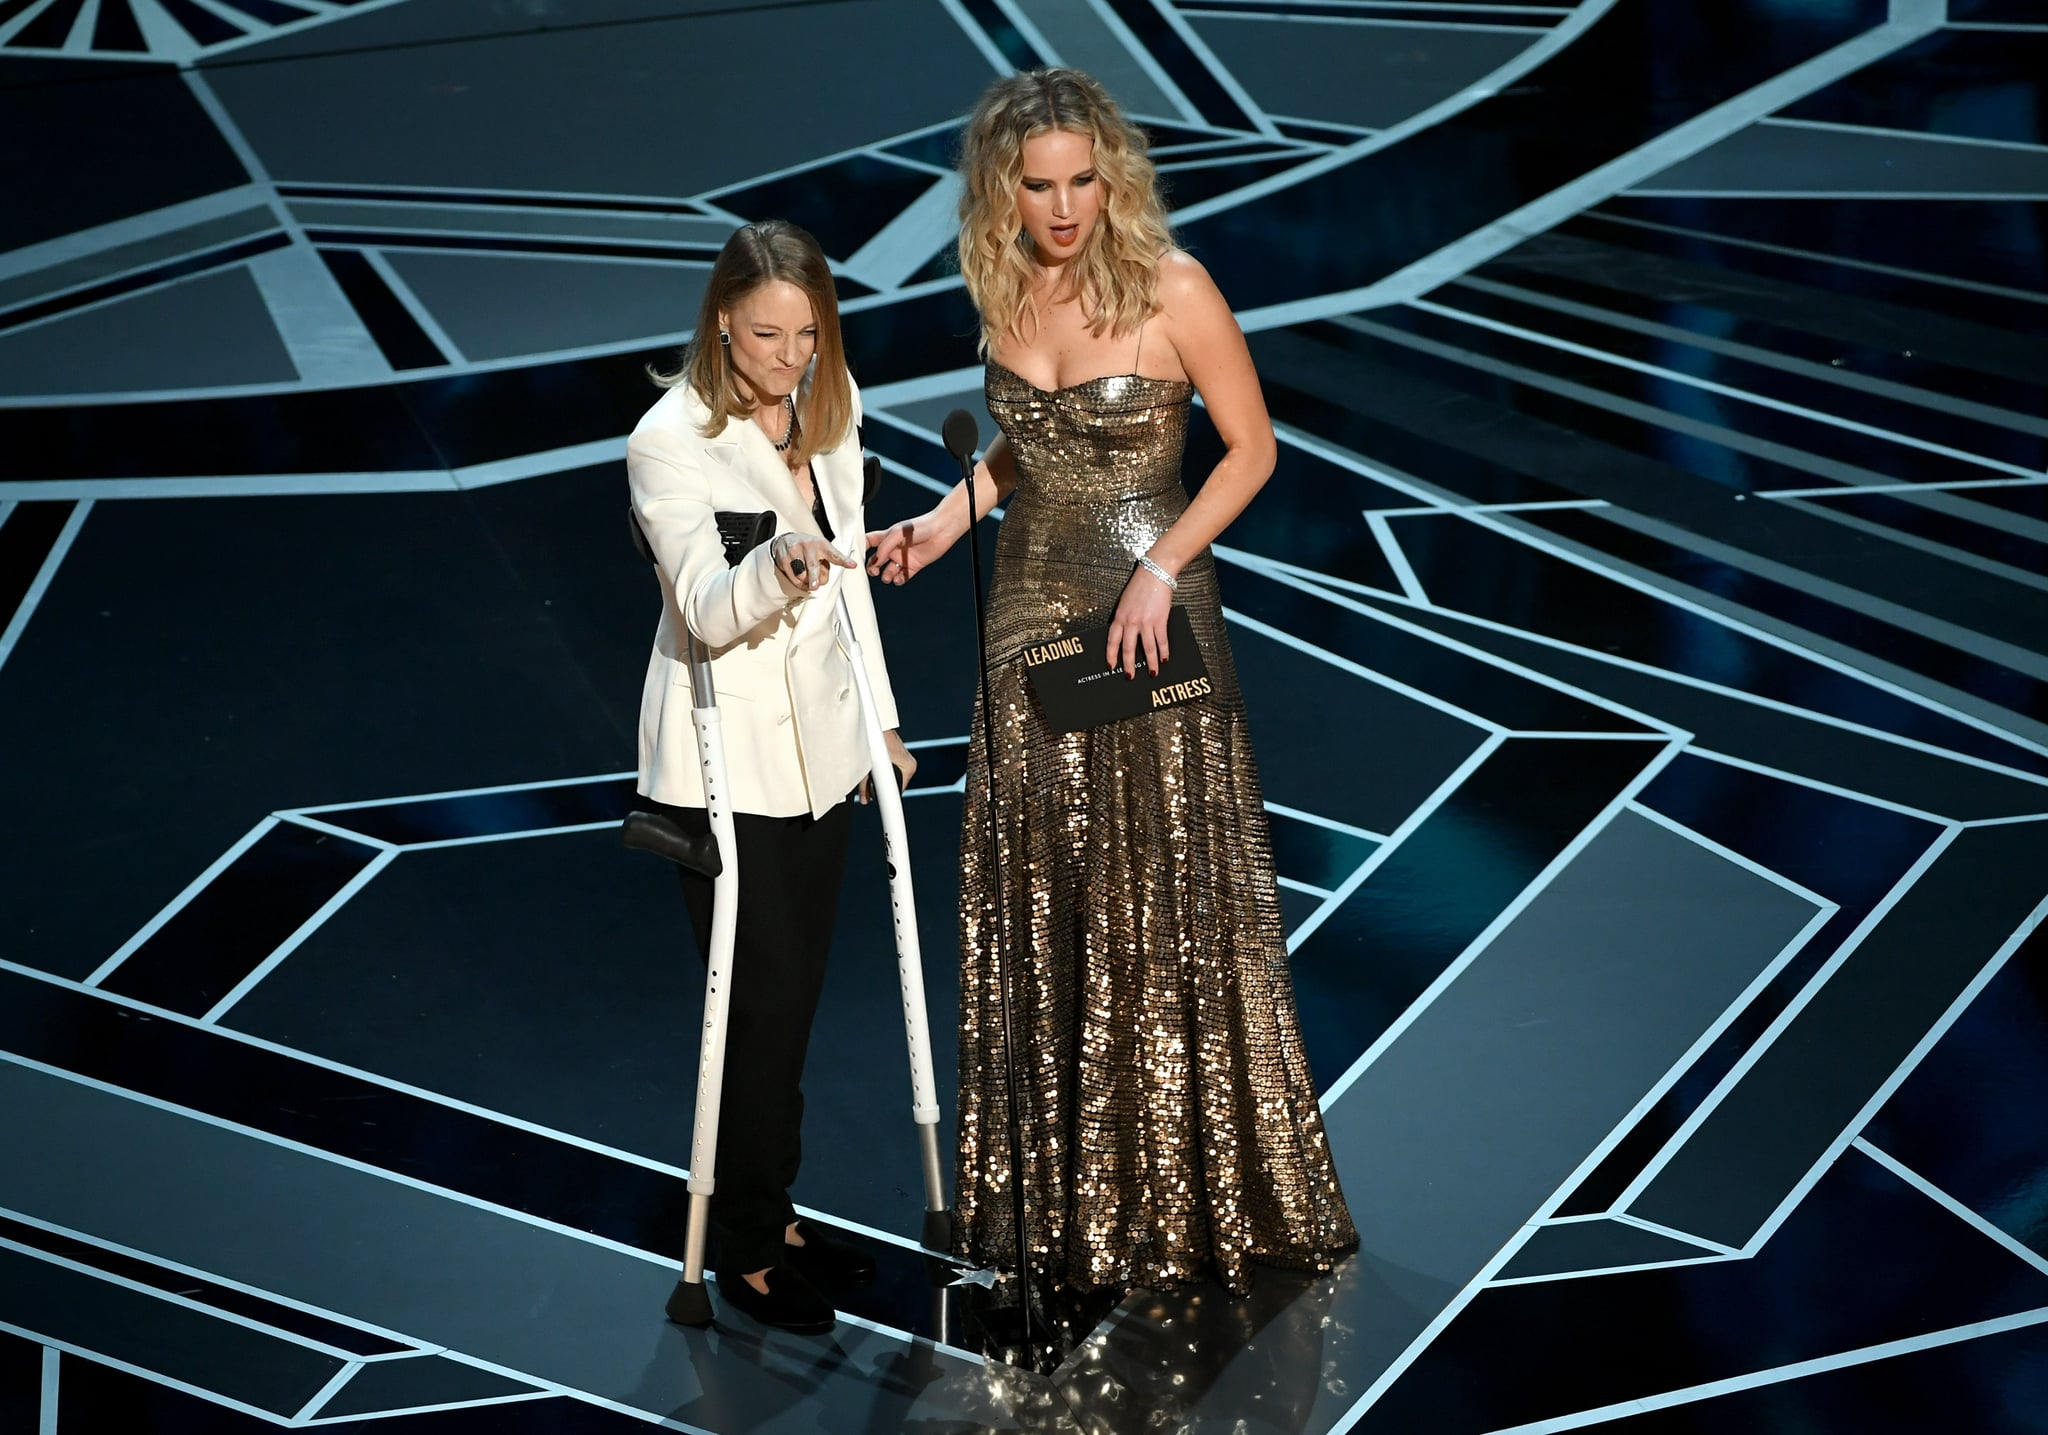 HOLLYWOOD, CA - MARCH 04:  Actors Jodie Foster (L) and Jennifer Lawrence speak onstage during the 90th Annual Academy Awards at the Dolby Theatre at Hollywood & Highland centre on March 4, 2018 in Hollywood, California.  (Photo by Kevin Winter/Getty Images)